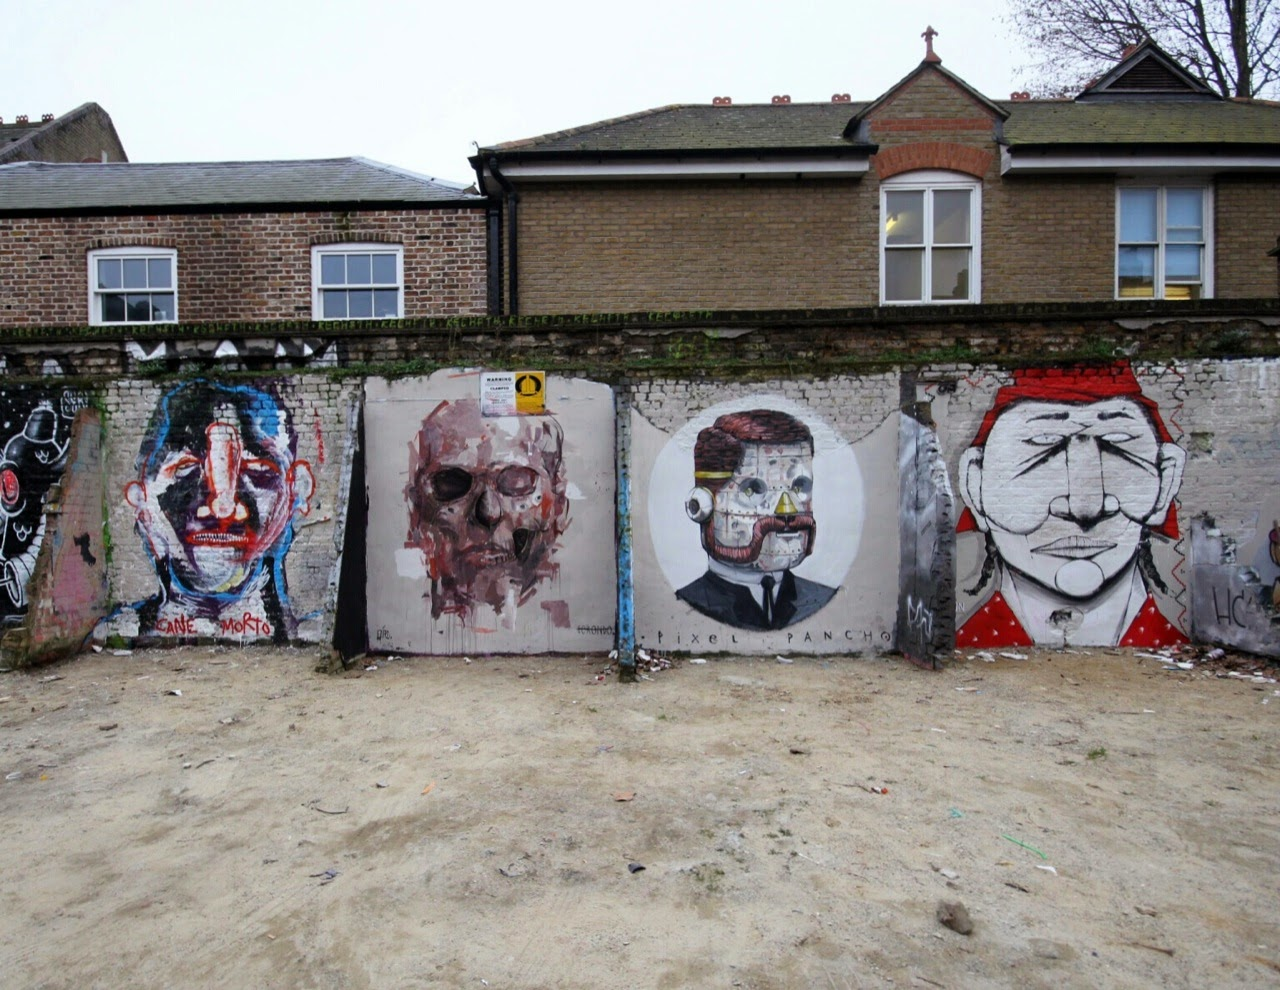 Borondo x Alexis Diaz, Pixel Pancho, RUN, Cane Morto New Street Pieces - London, UK